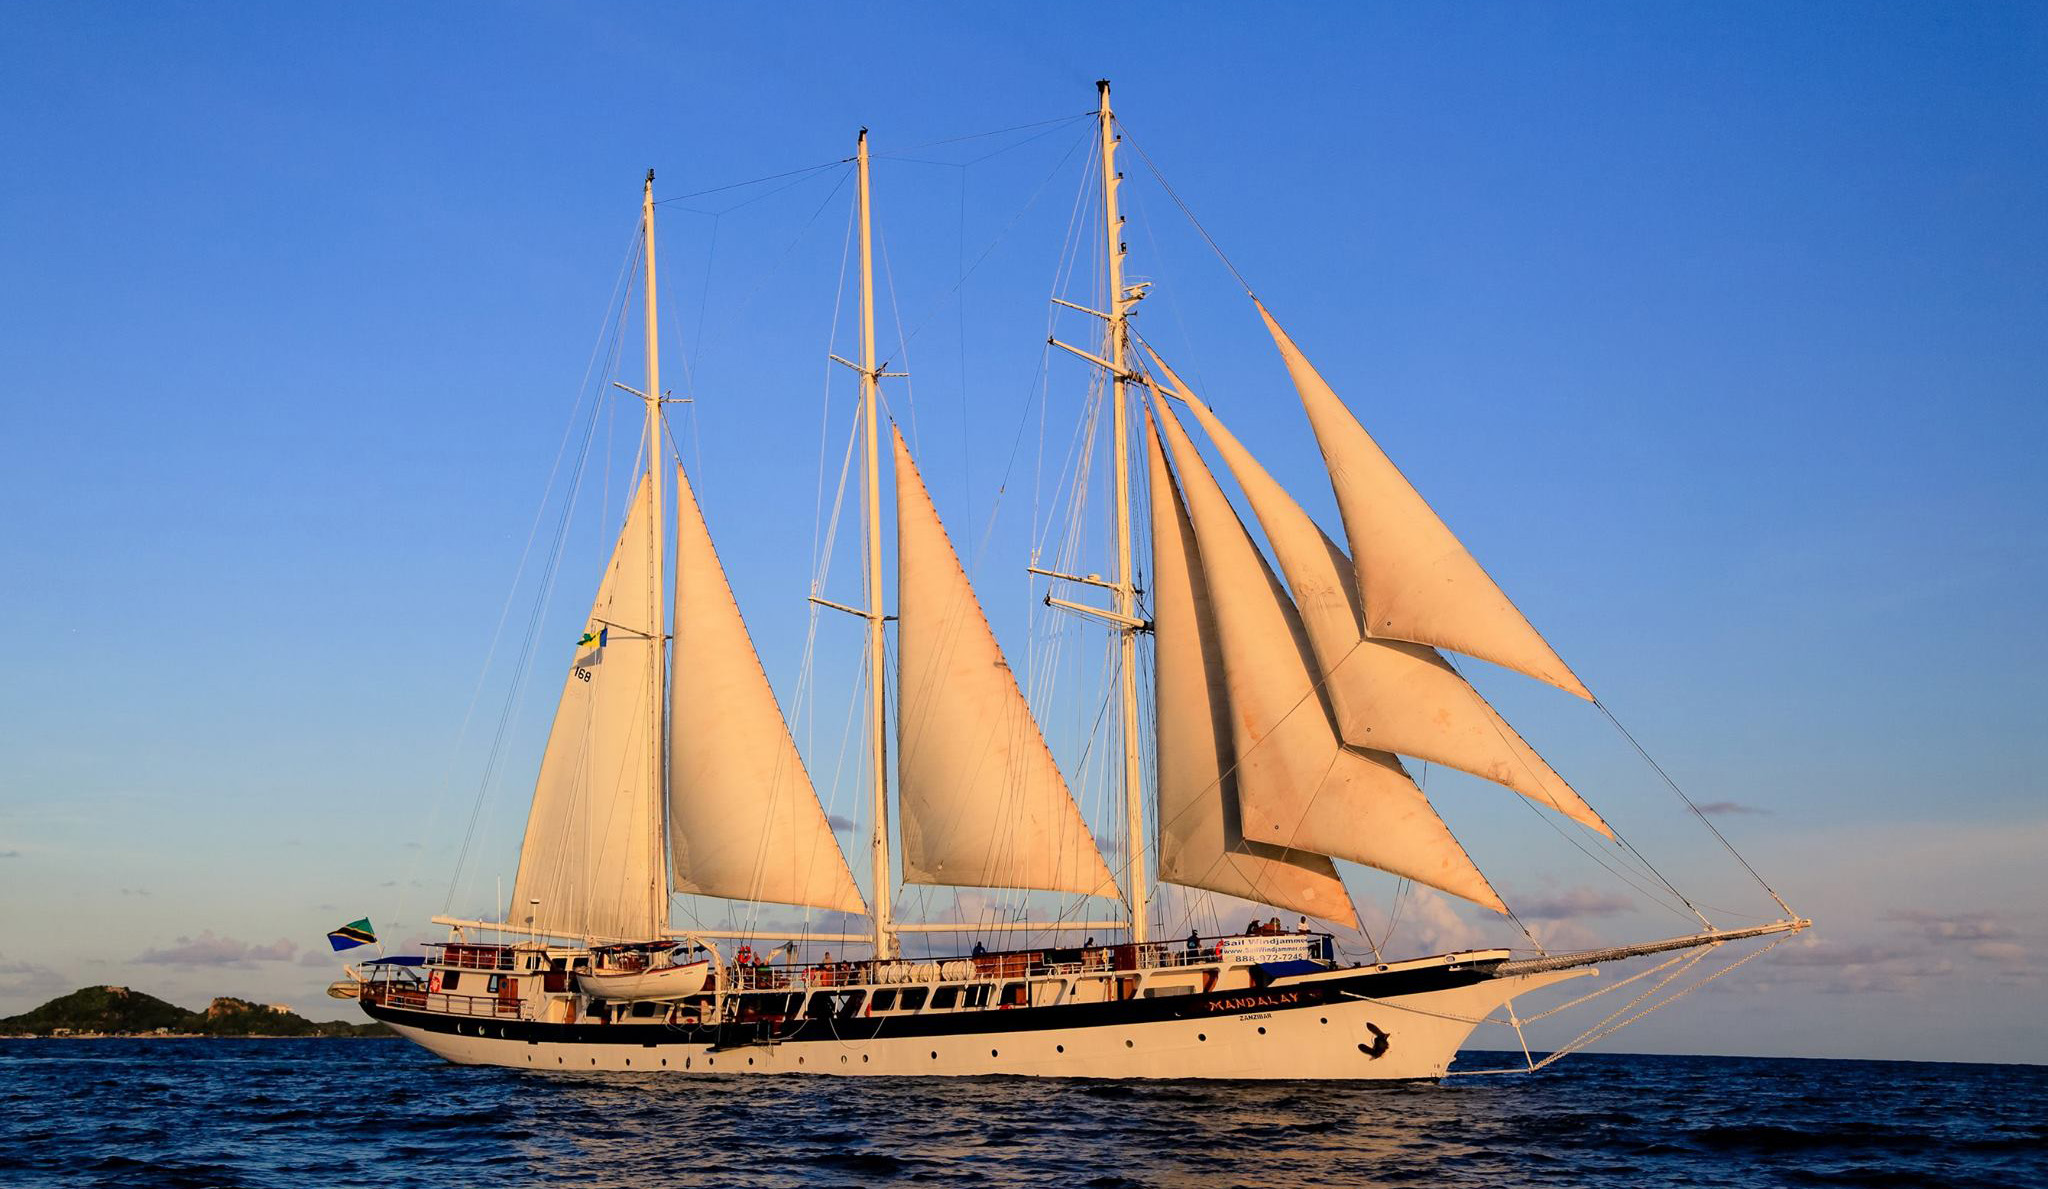 Adventure Travel Cruise with Top Models to Grenada on 236-foot Schooner : November 12 - 18th, 2017